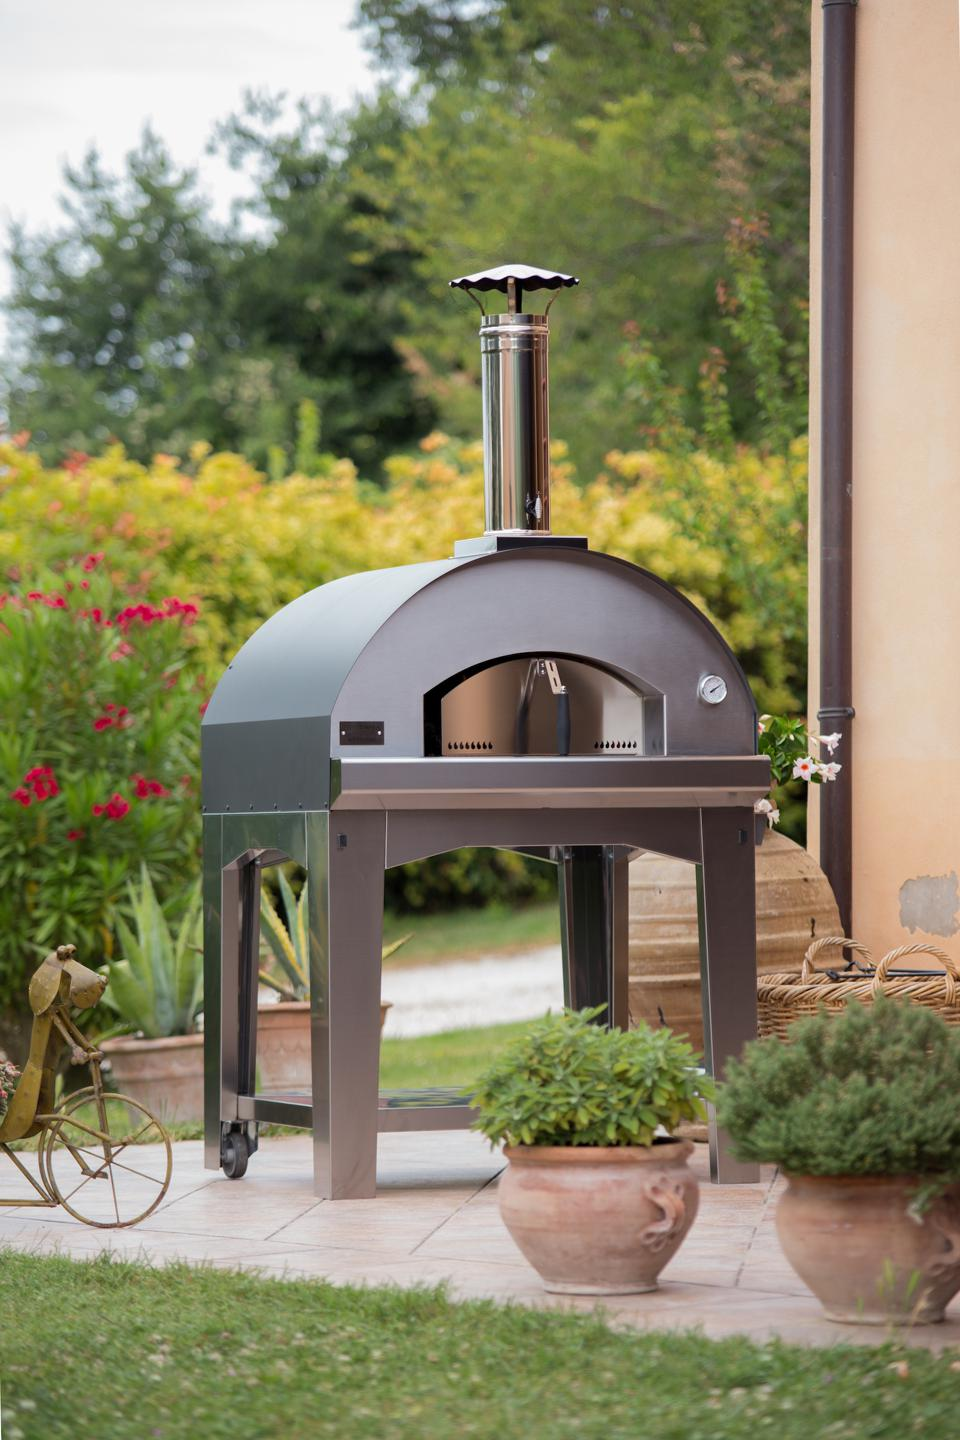 Pizza ovens like this one from Fontana Forni are becoming popular as an outdoor appliance.